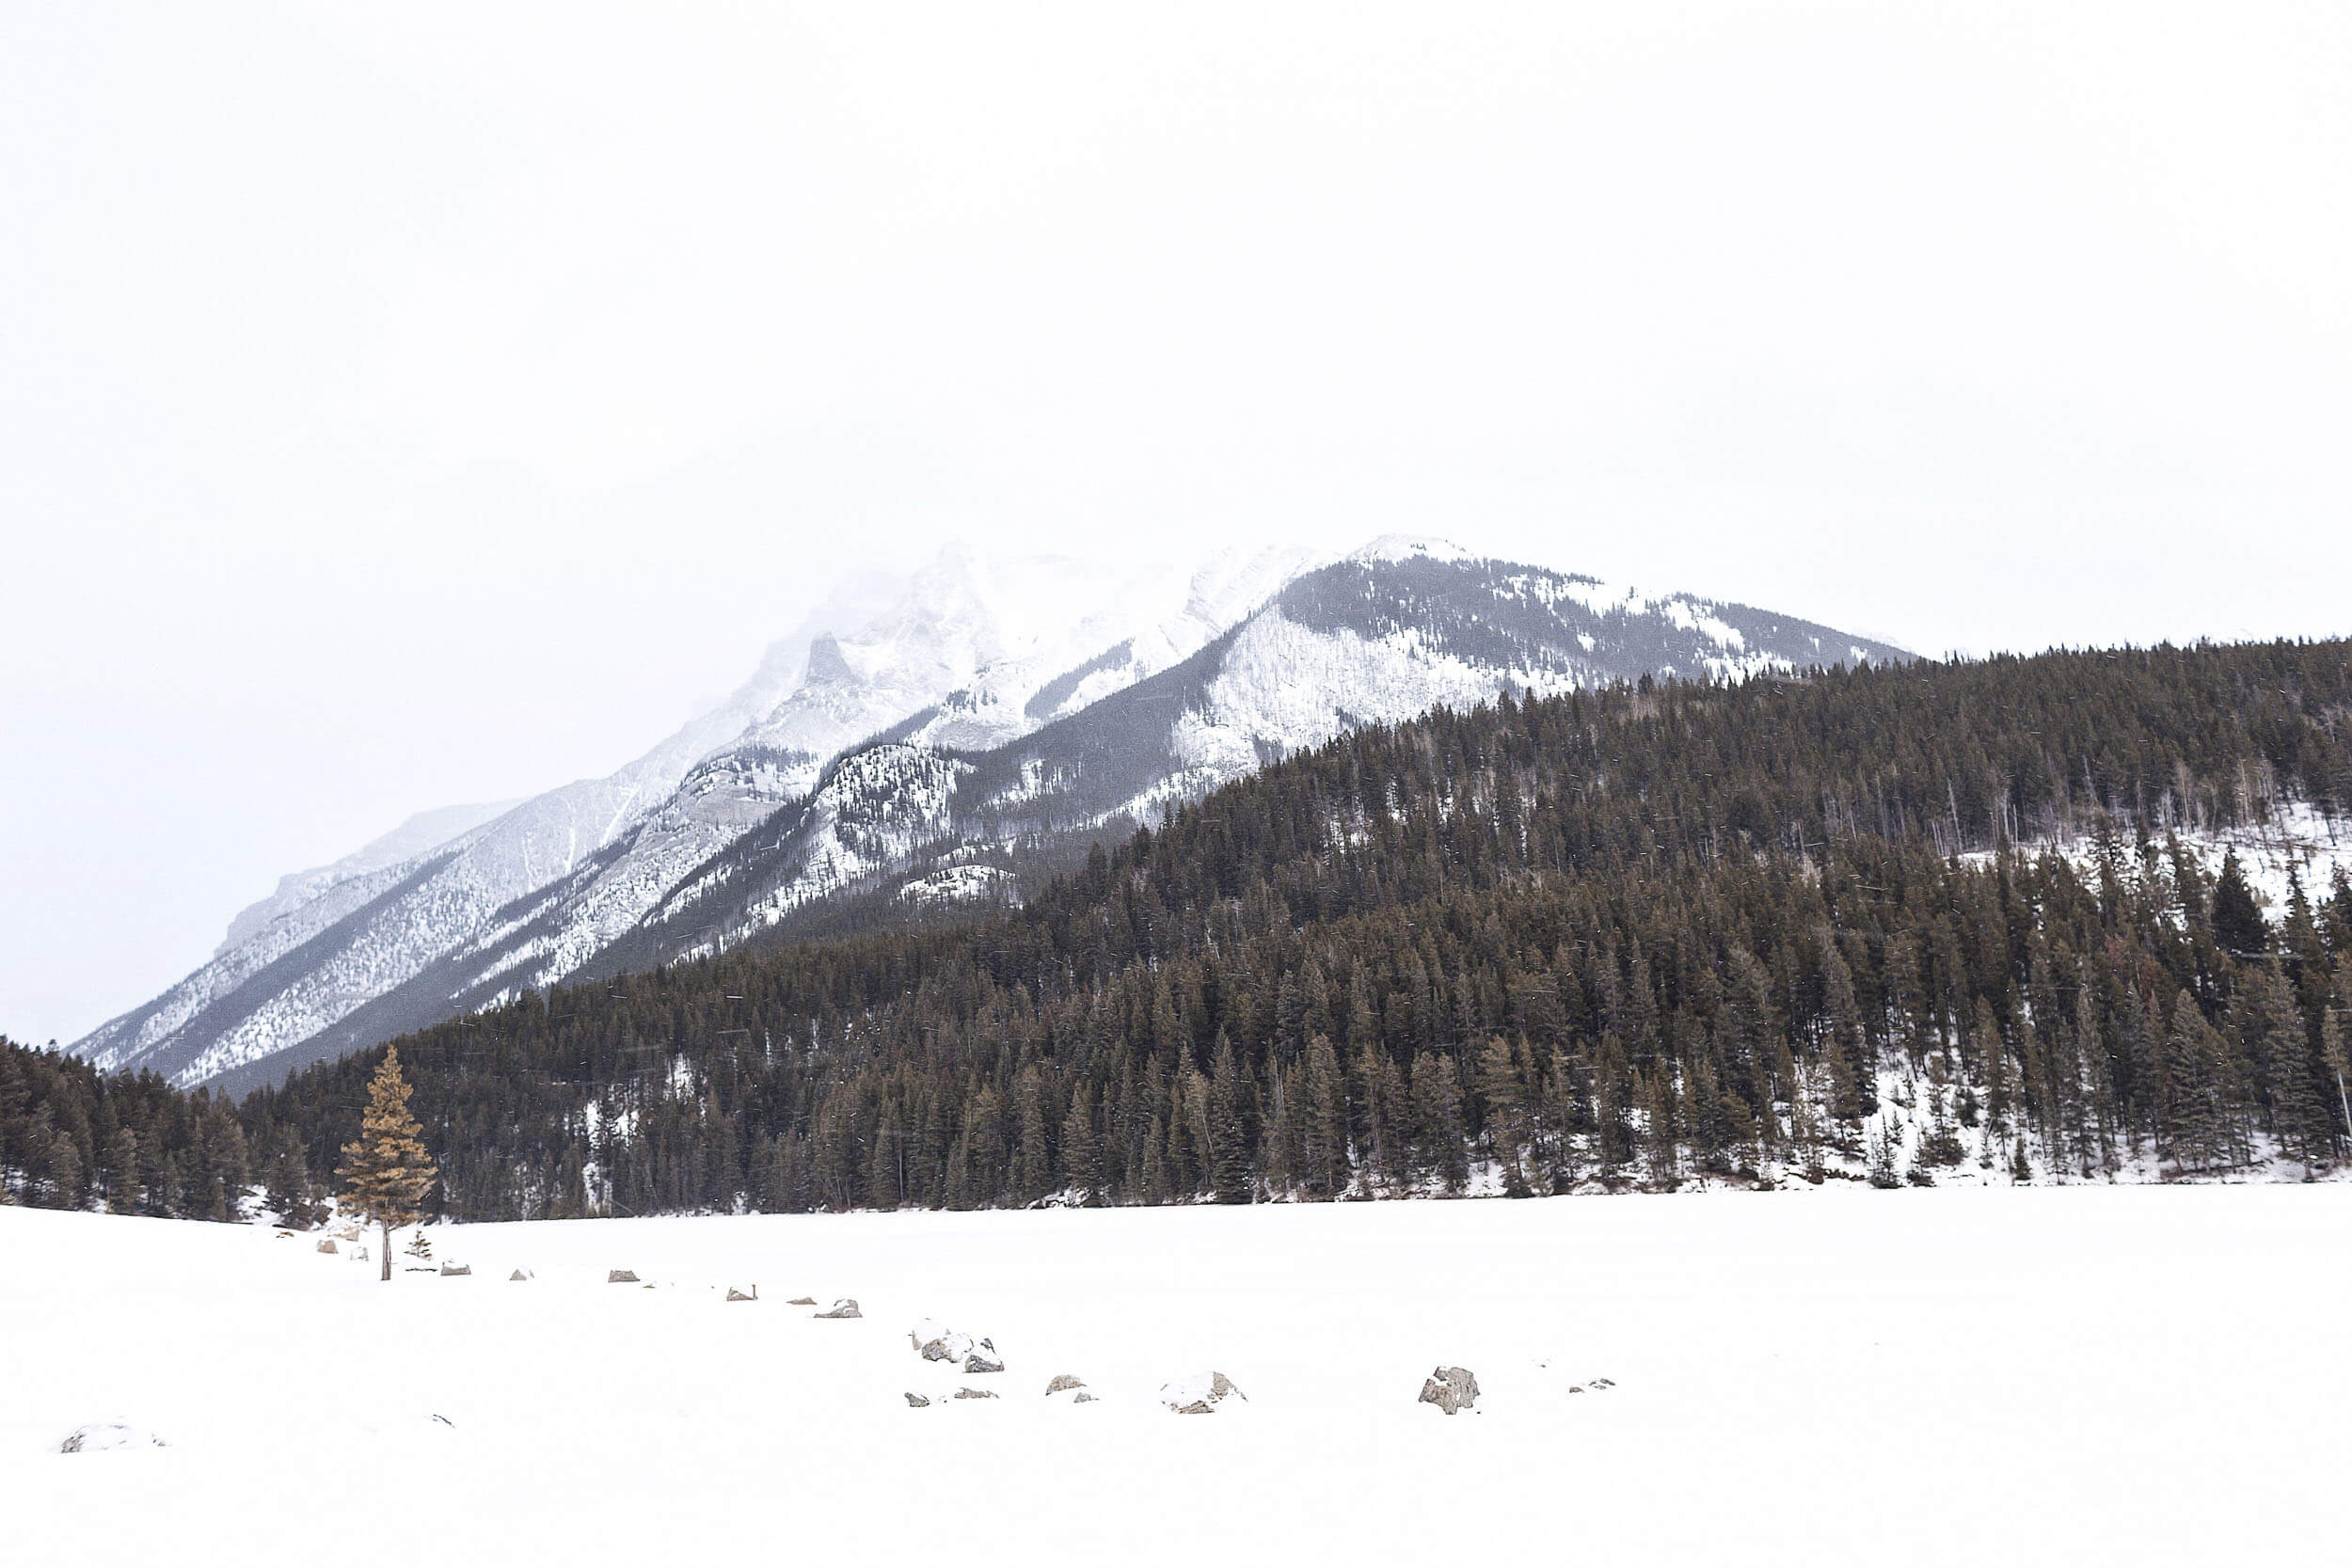 ckanani-banff-winter-a-guide-to-visiting-81.jpg